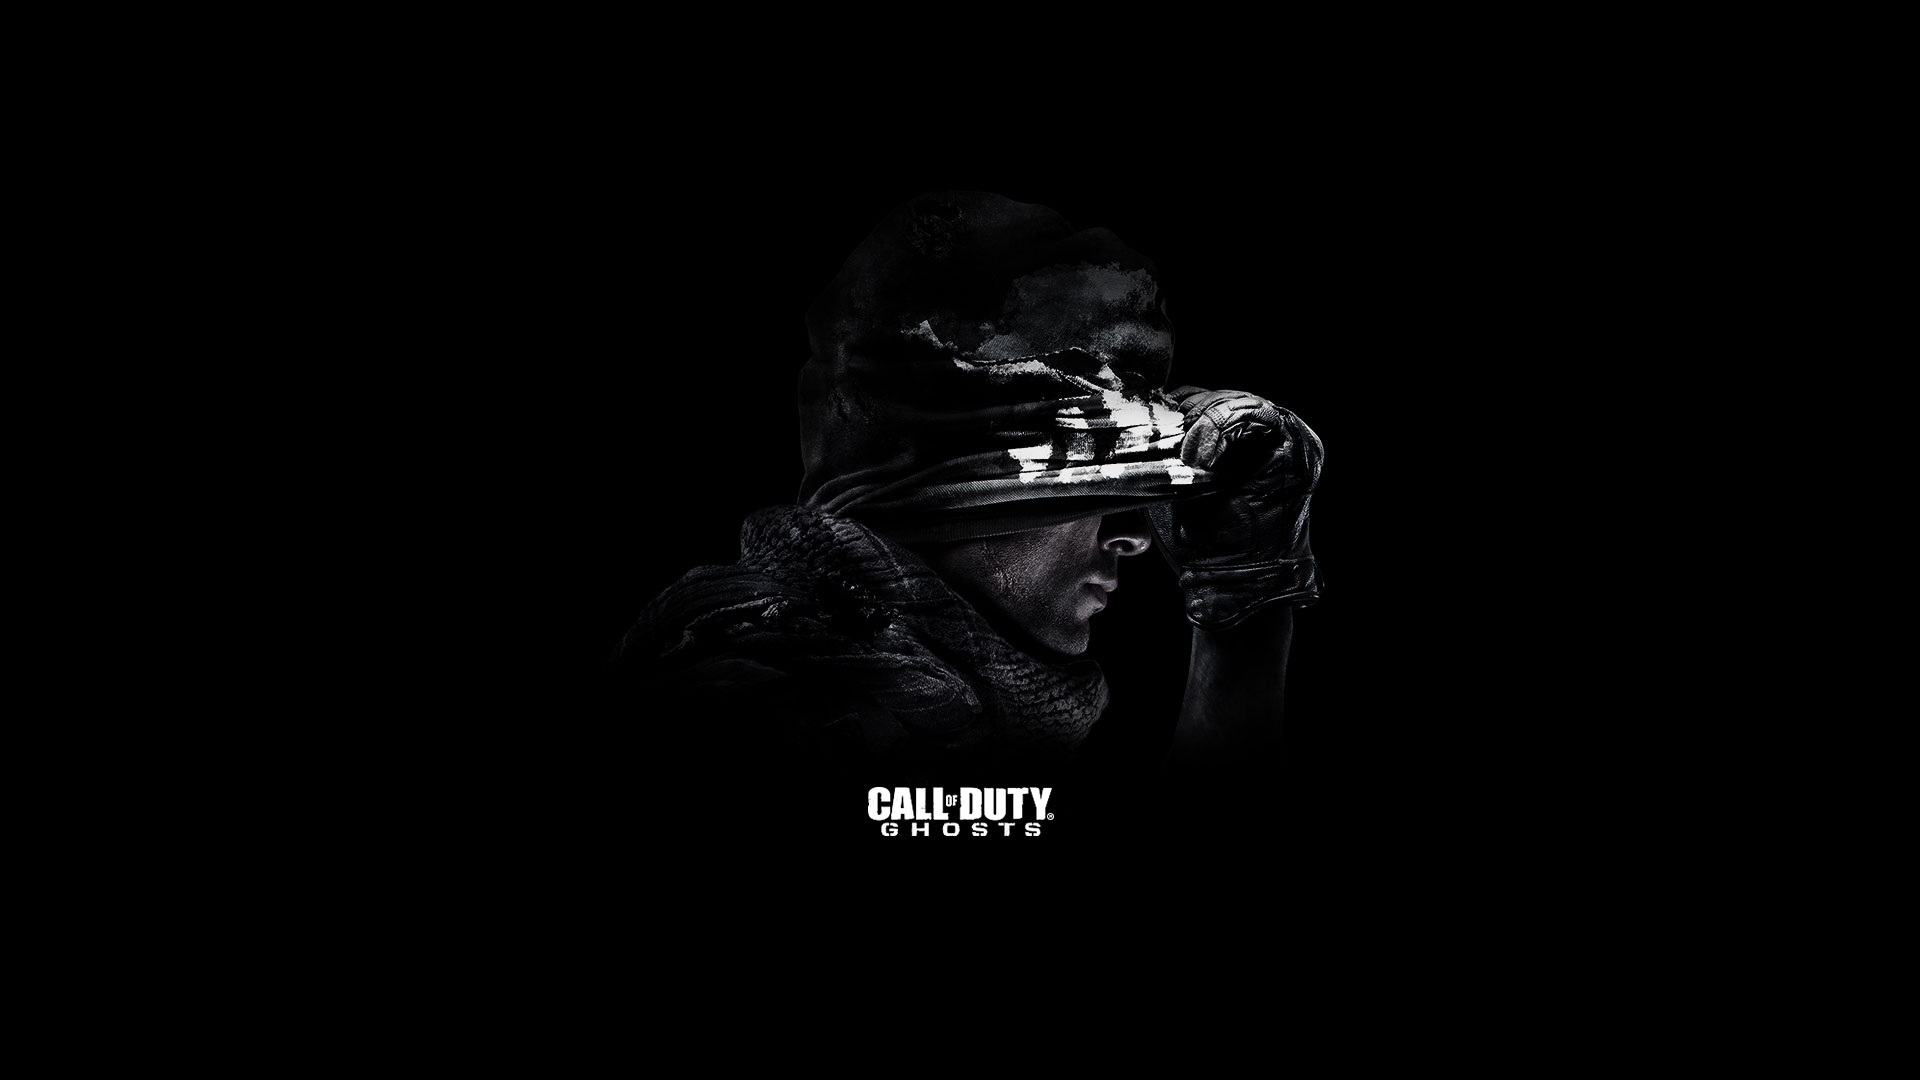 Download free HD Call Of Duty Ghosts Game 1080p Wallpaper, image